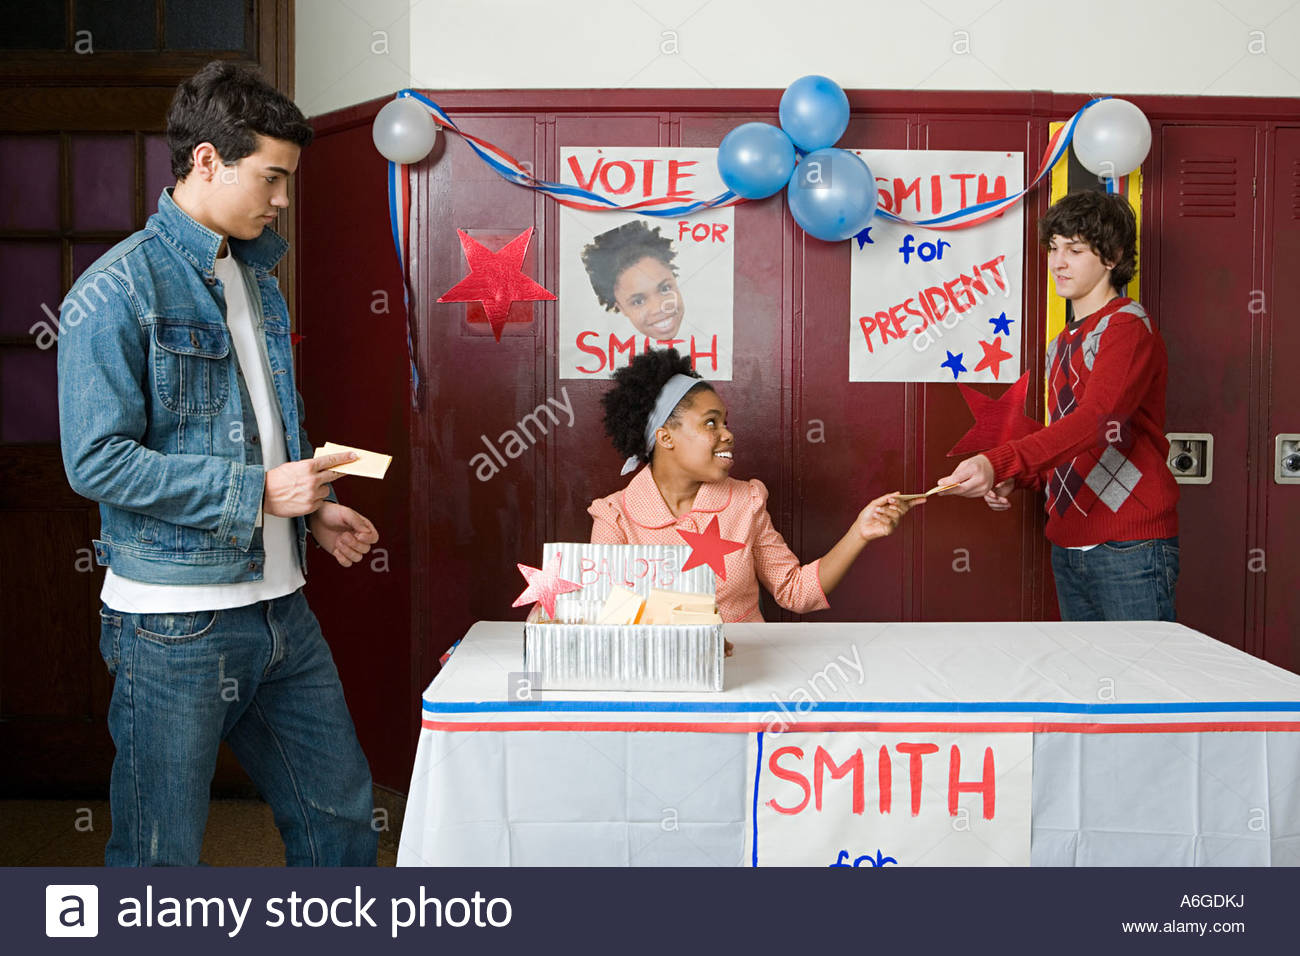 Boys giving votes to girl - Stock Image